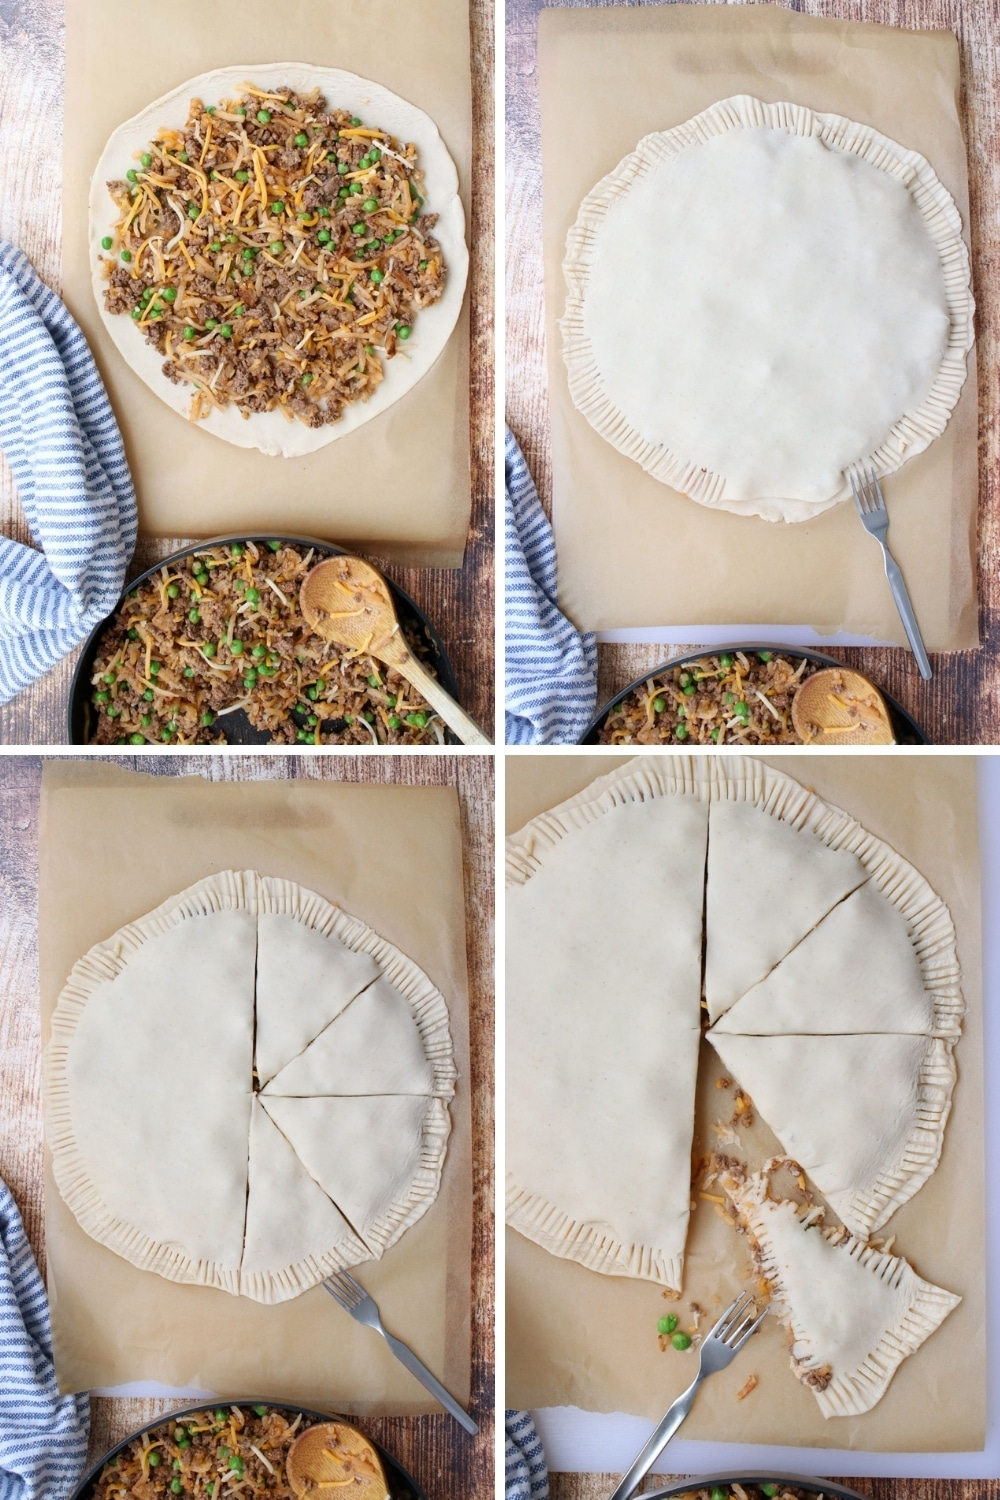 4 photos showing how to assemble hand pies